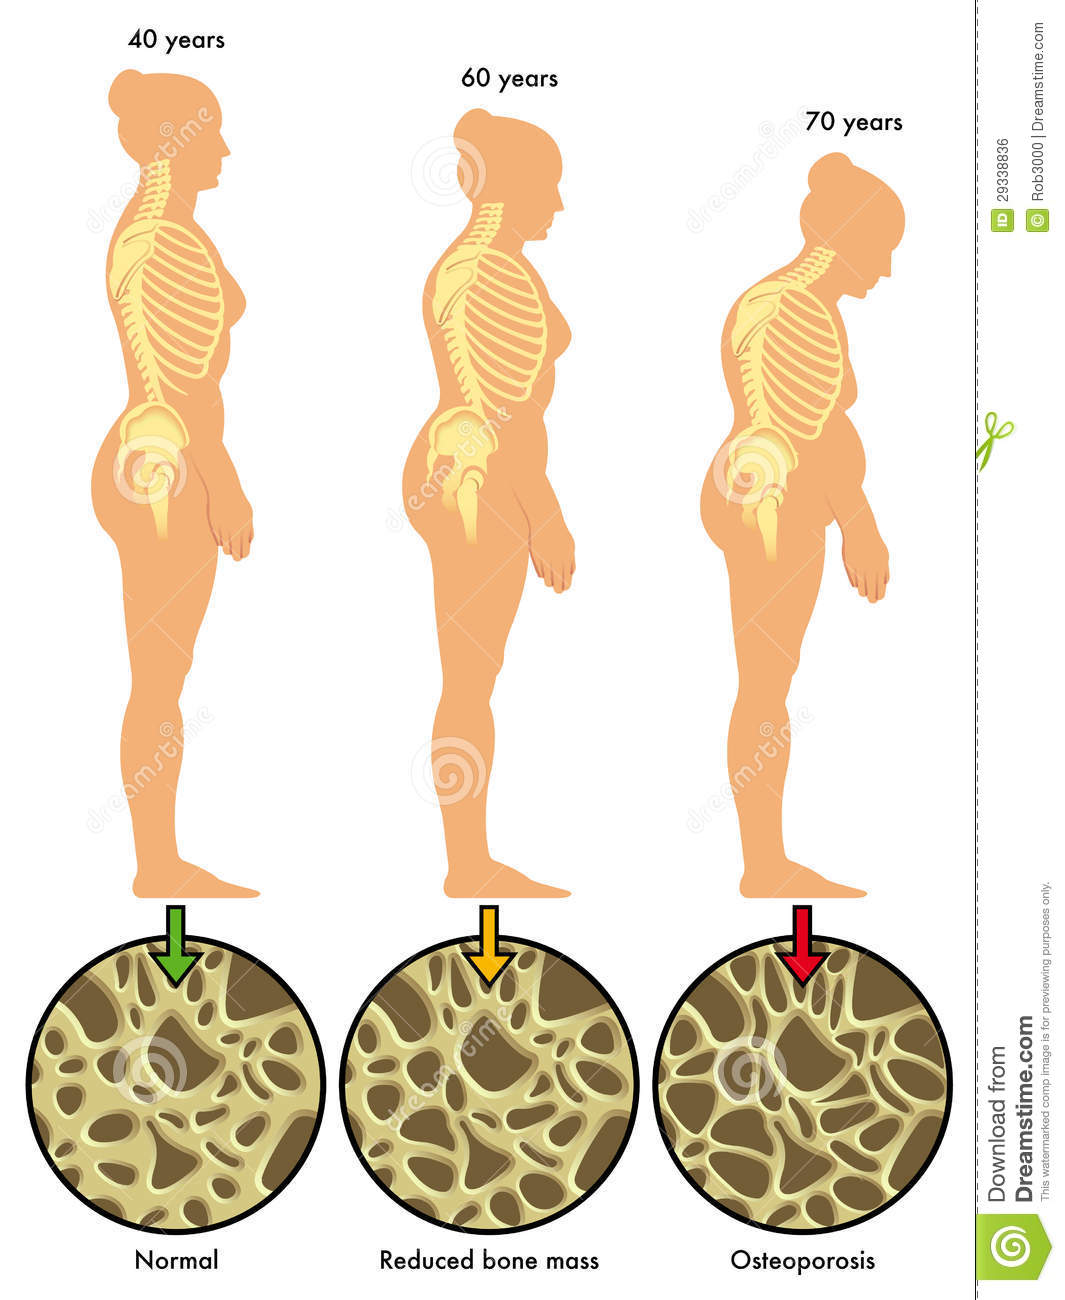 osteoporosis 3 royalty free stock image - image: 29338836, Skeleton